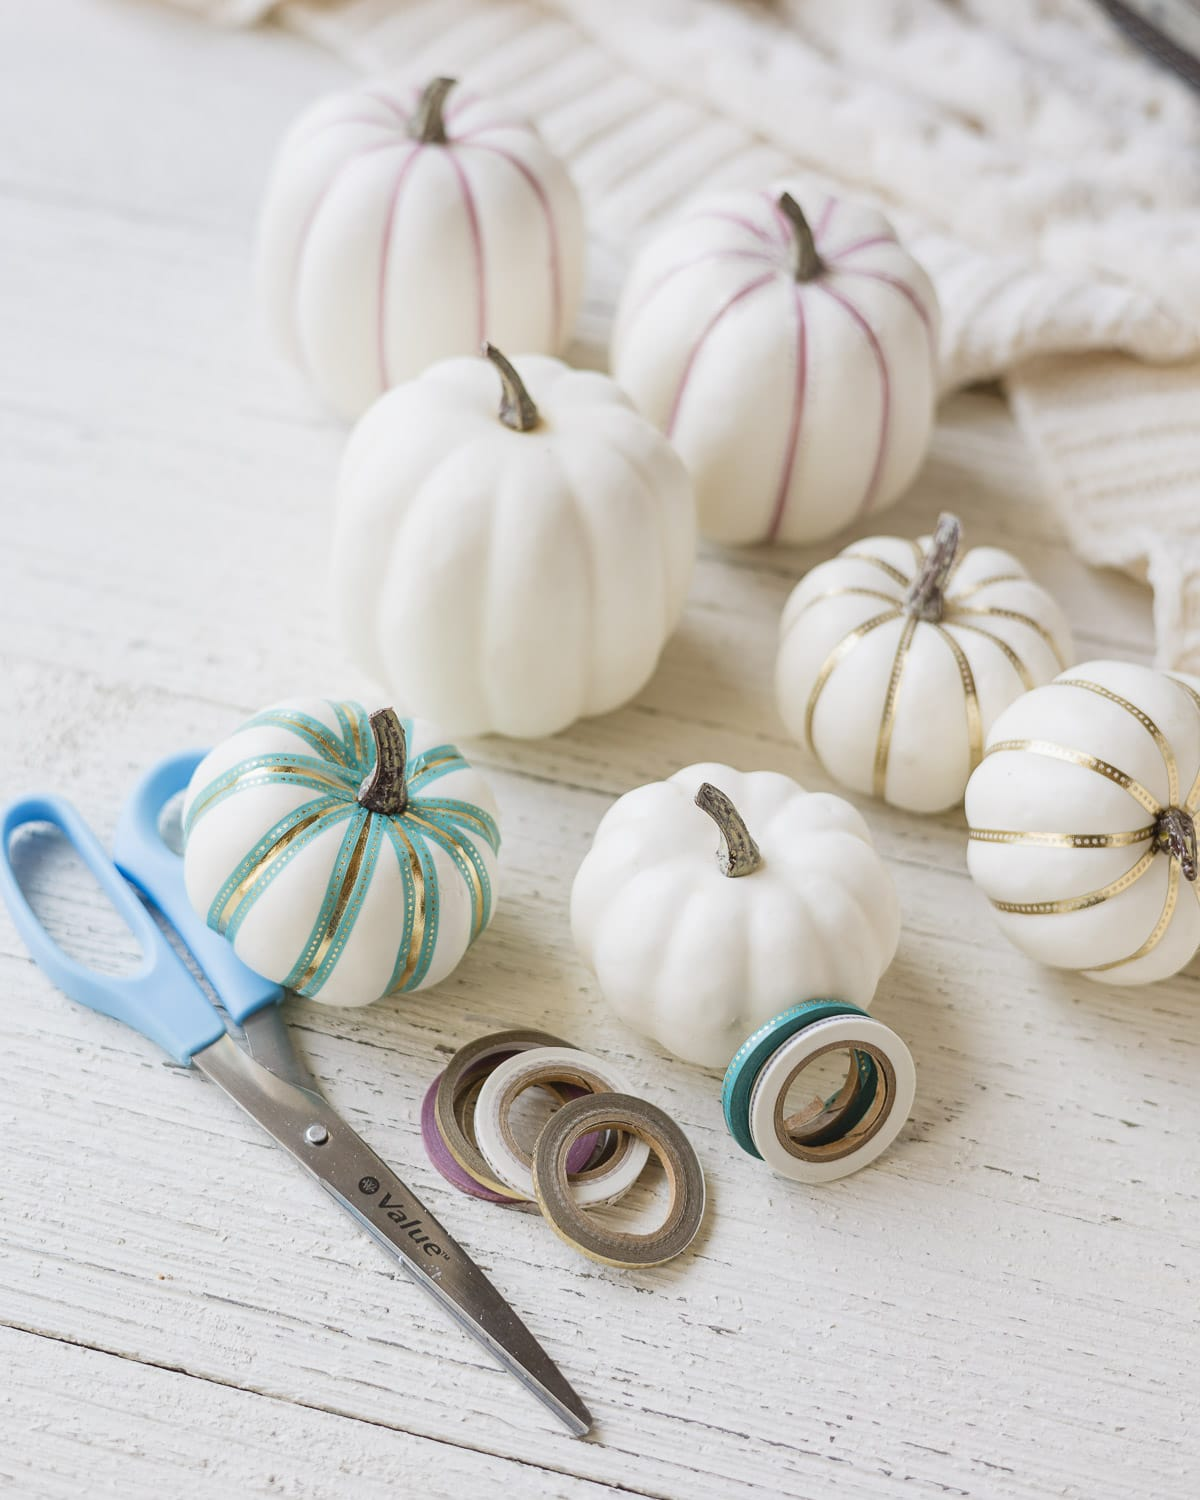 White foam pumpkins, scissors, decorative tape, and decorated pumpkins on a wooden surface.